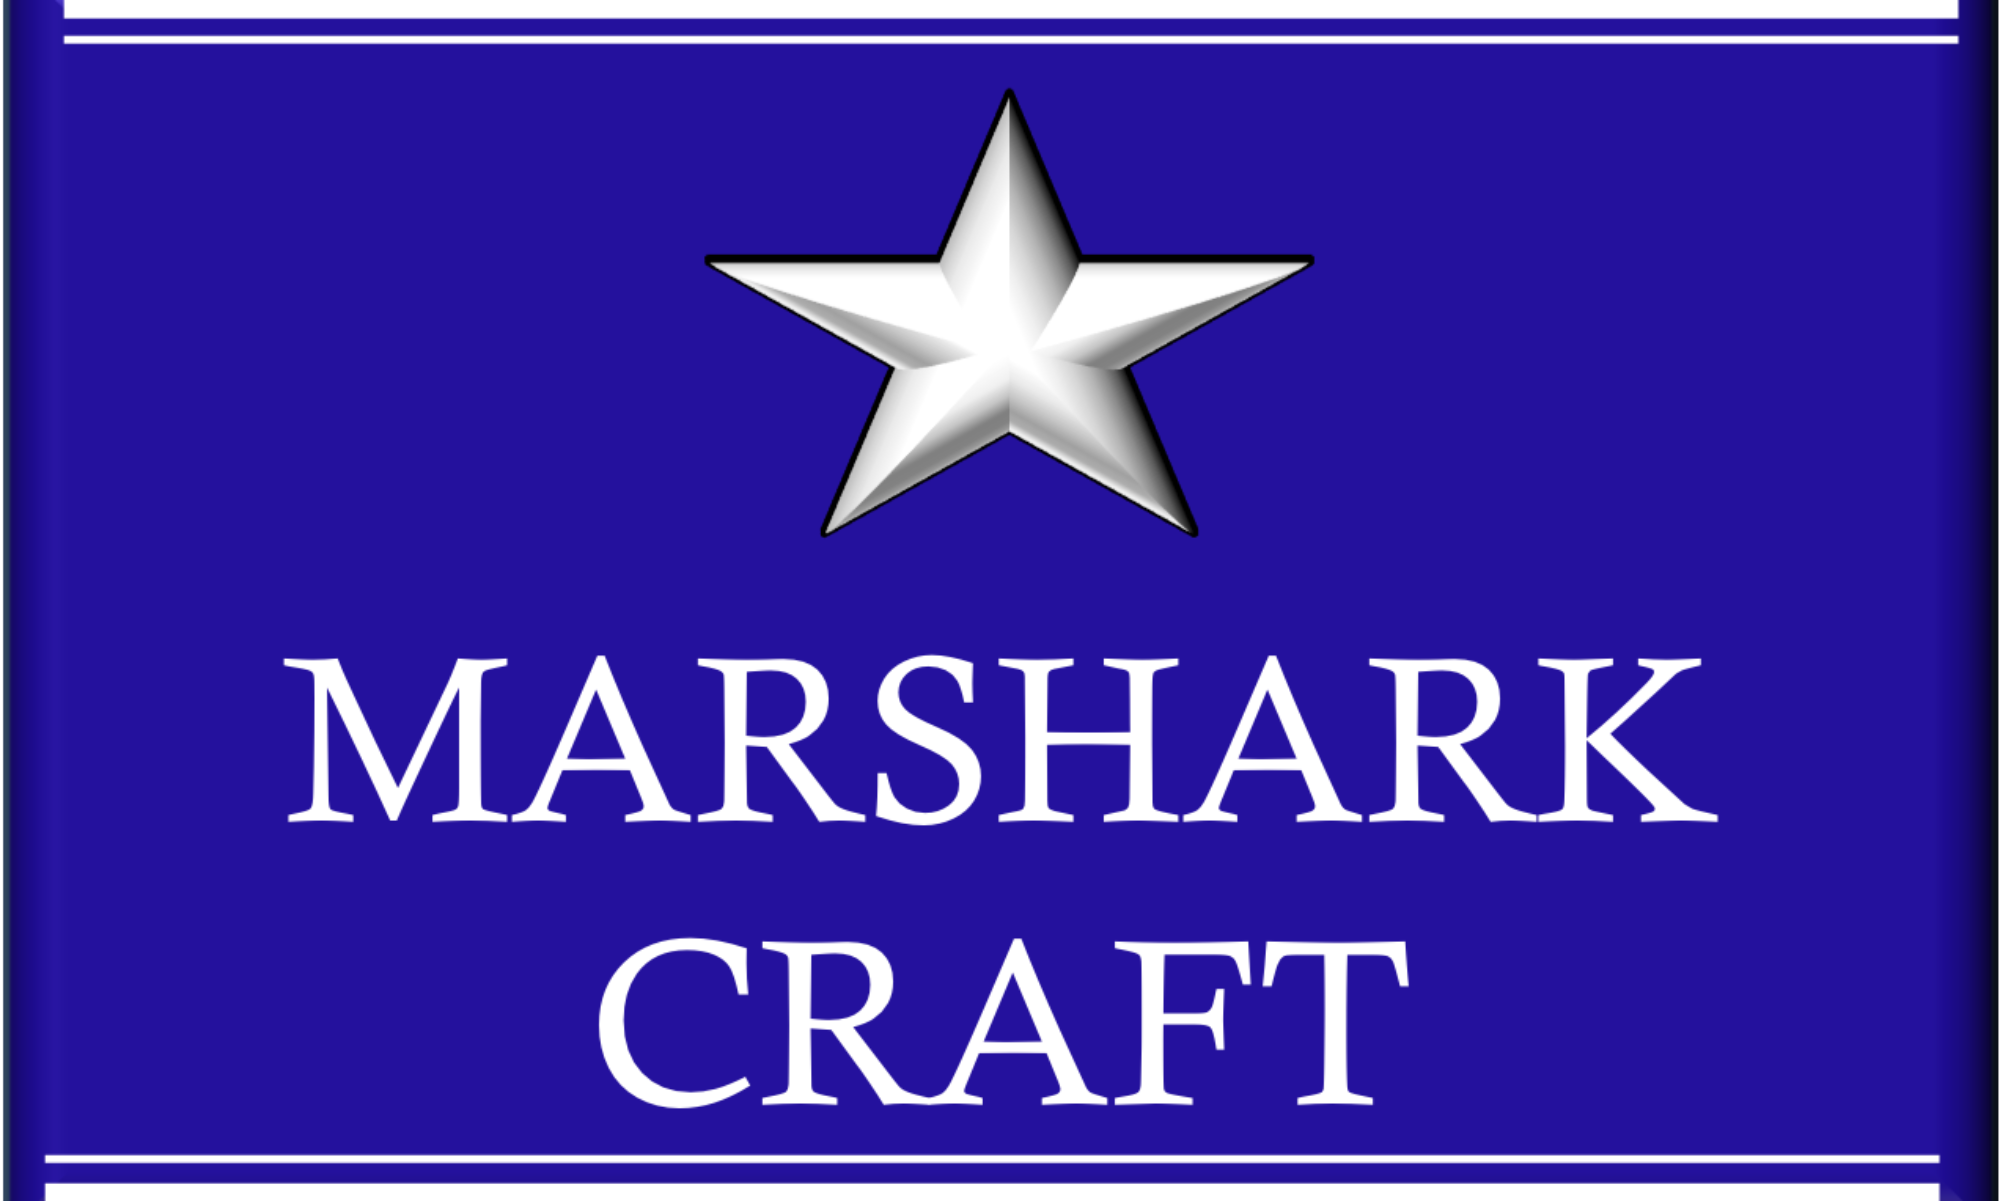 Marshark Craft